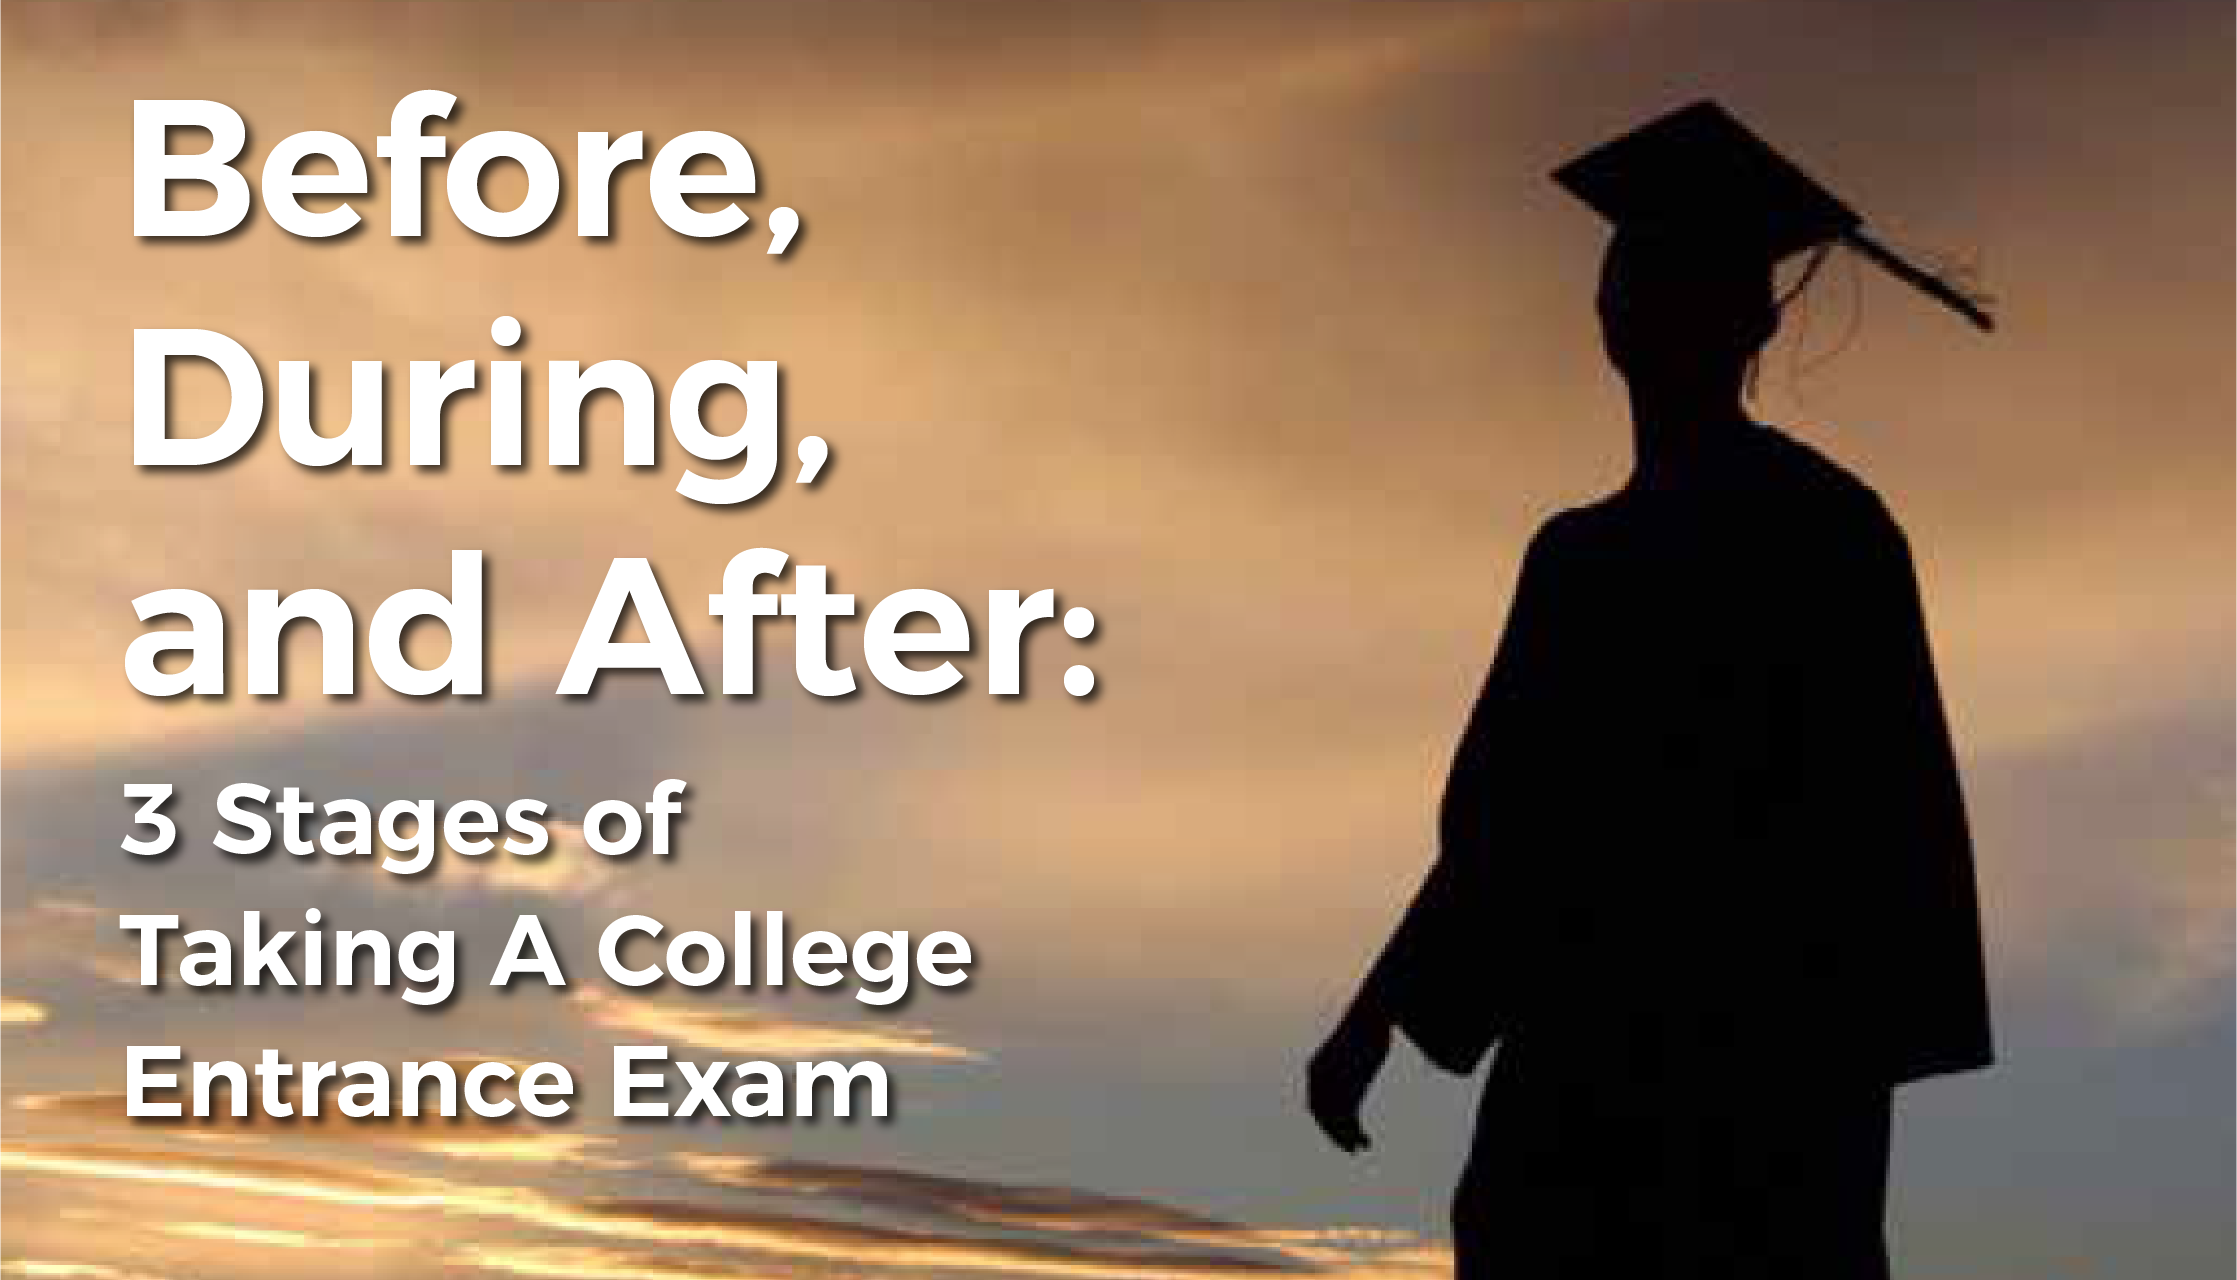 3 stages for taking a college entrance exam